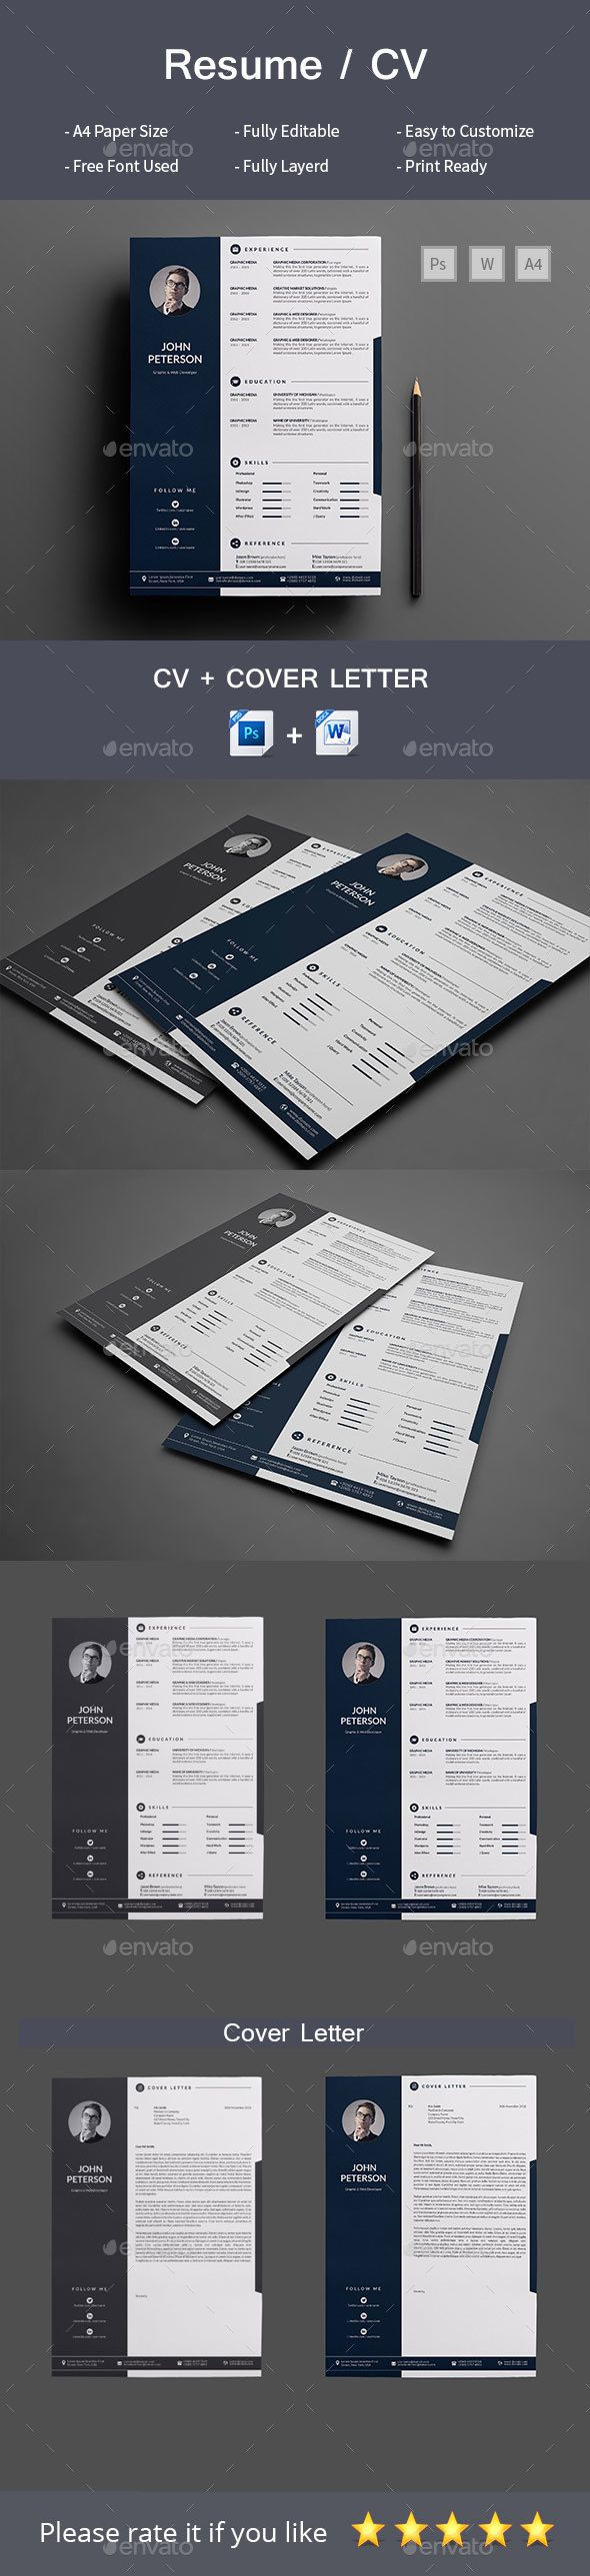 Simple Resume Templates%0A Resume CoverLetter